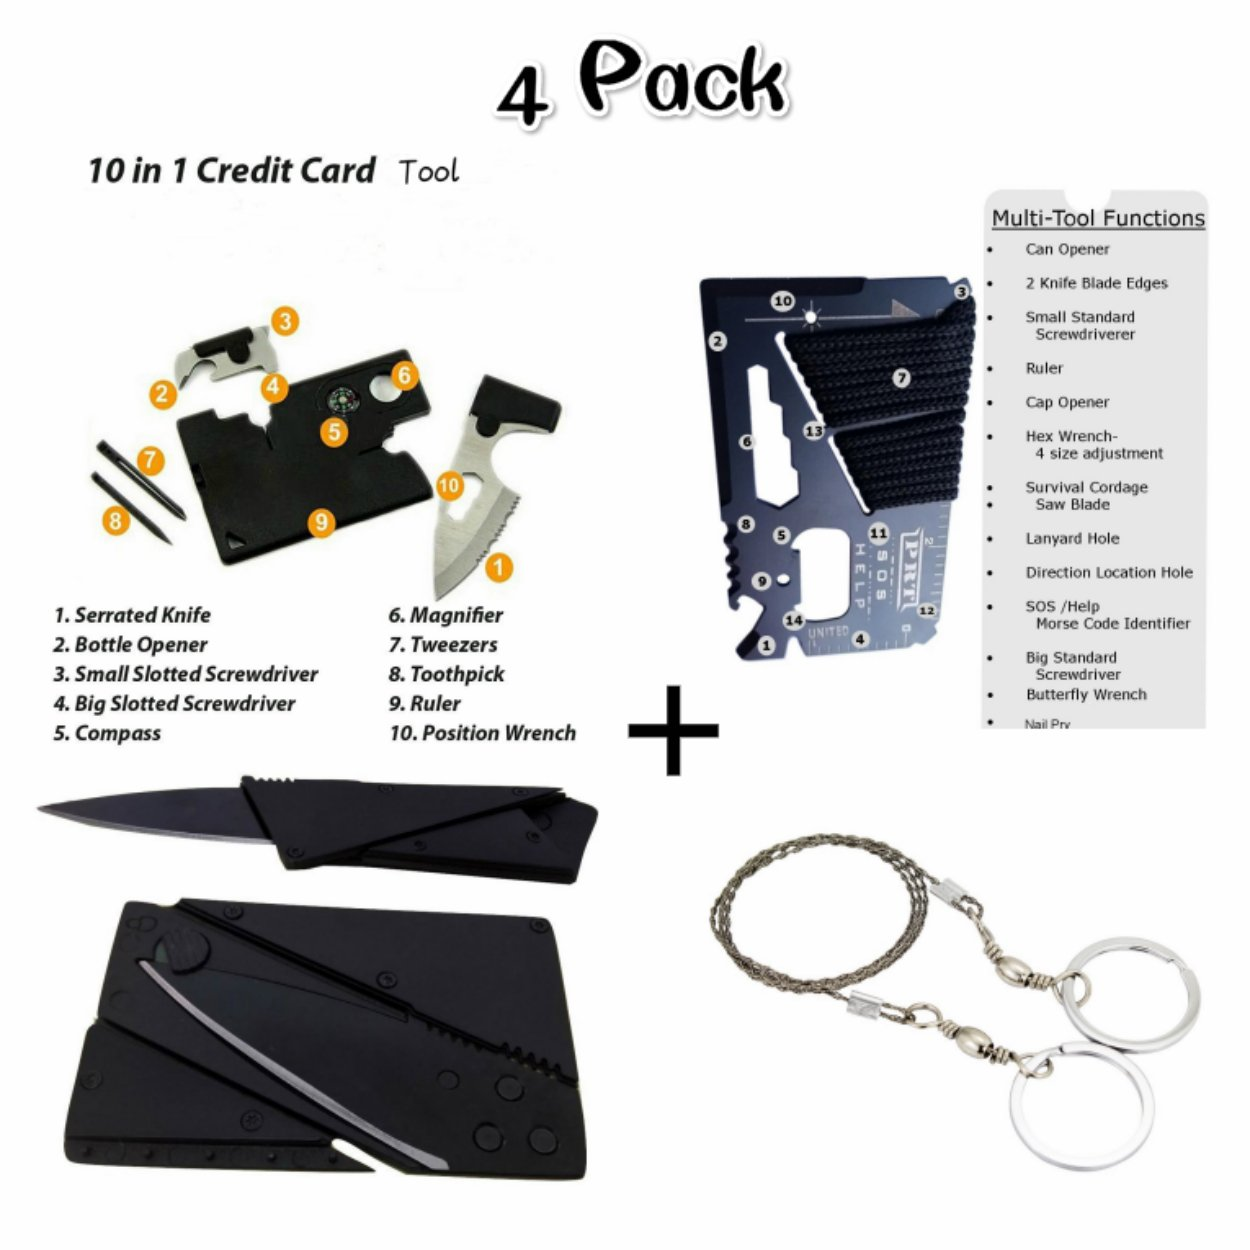 Emergency Tactical Survival Kit with 10 in 1 Credit Card Tool Wallet Tool,14 in 1 Credit Card Multitool,Wallet Knife Card Knife,Line Saw Pocket Saw,4 type/set Gadgets Pocket Tool for Camping,Hiking